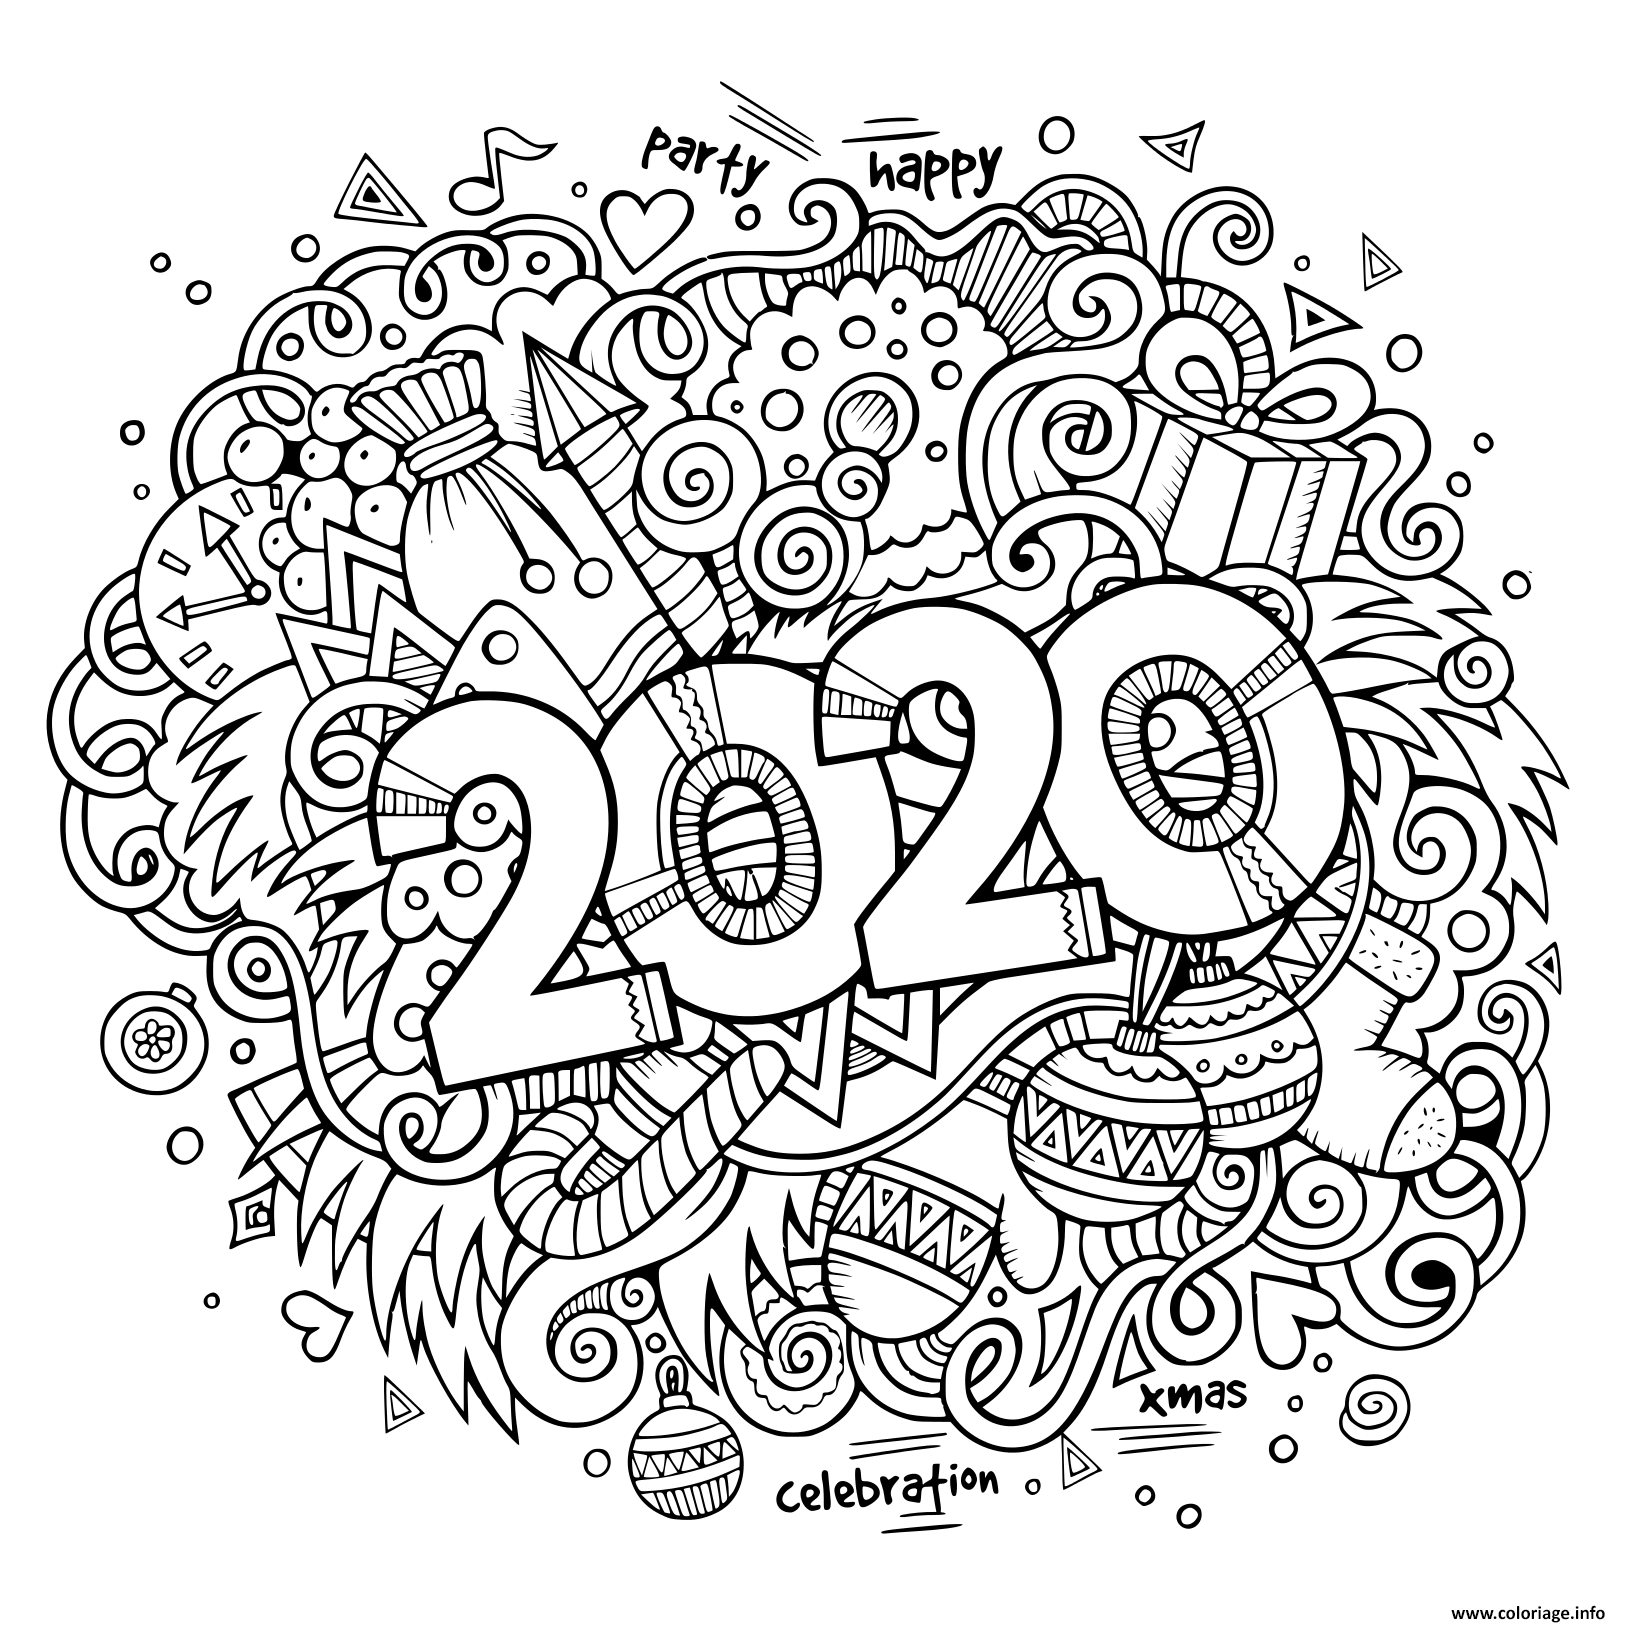 Coloriage Nouvel An Doodles Objects And Elements